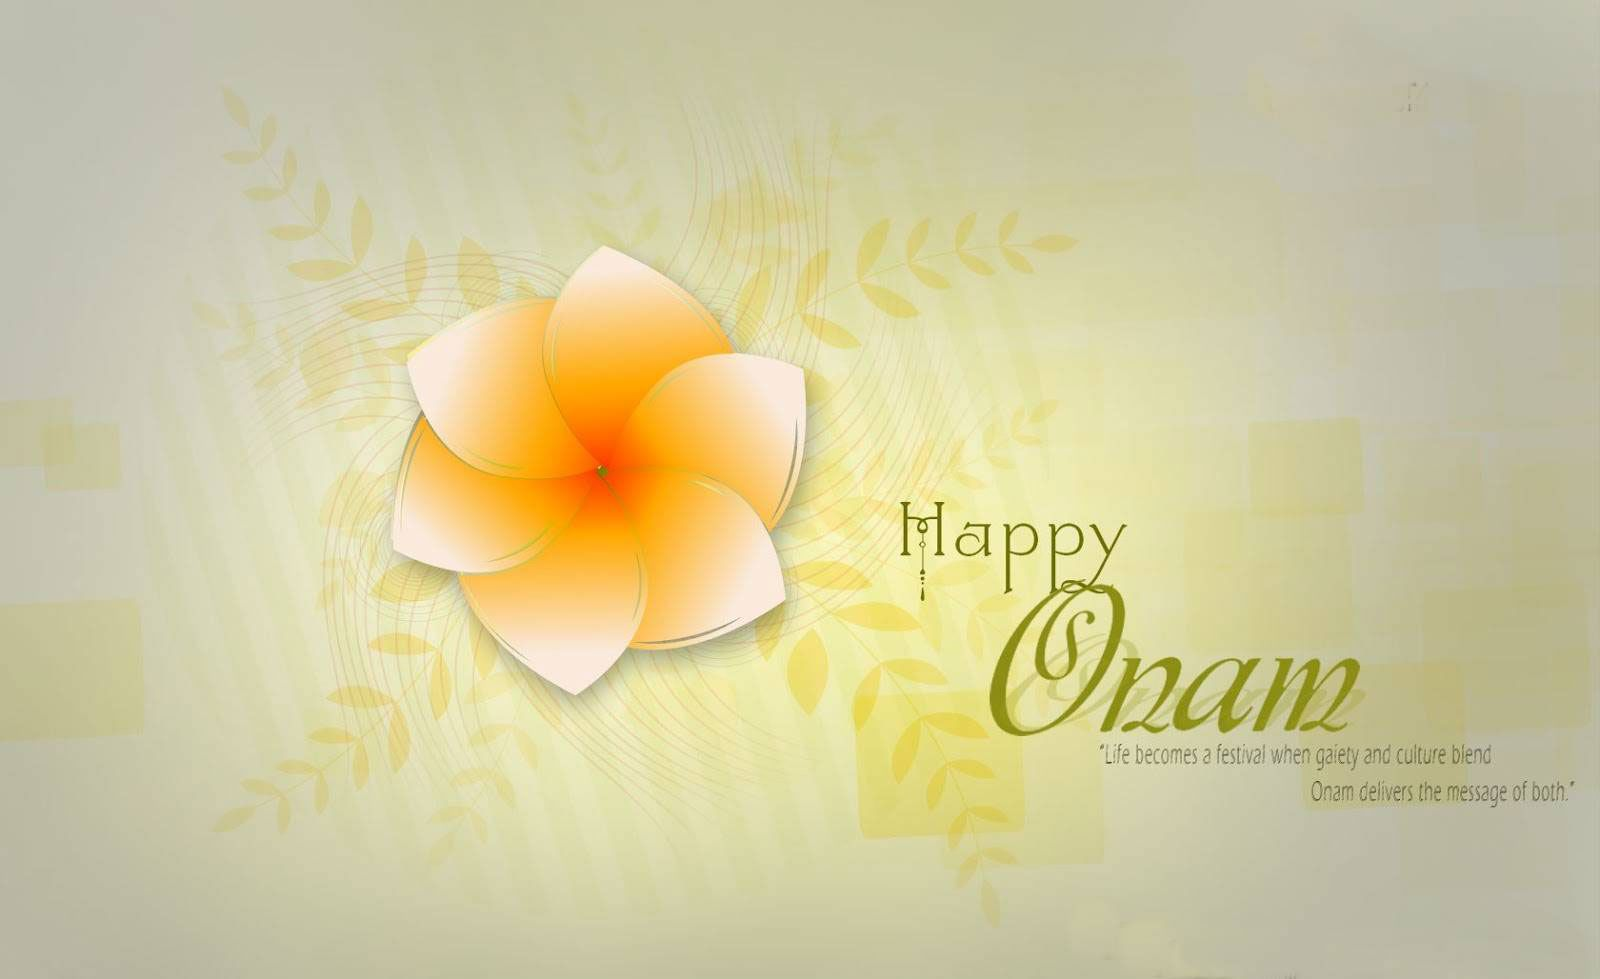 Happy Onam 2014 Wishes Images Onam Wishes Quotes And Greetings